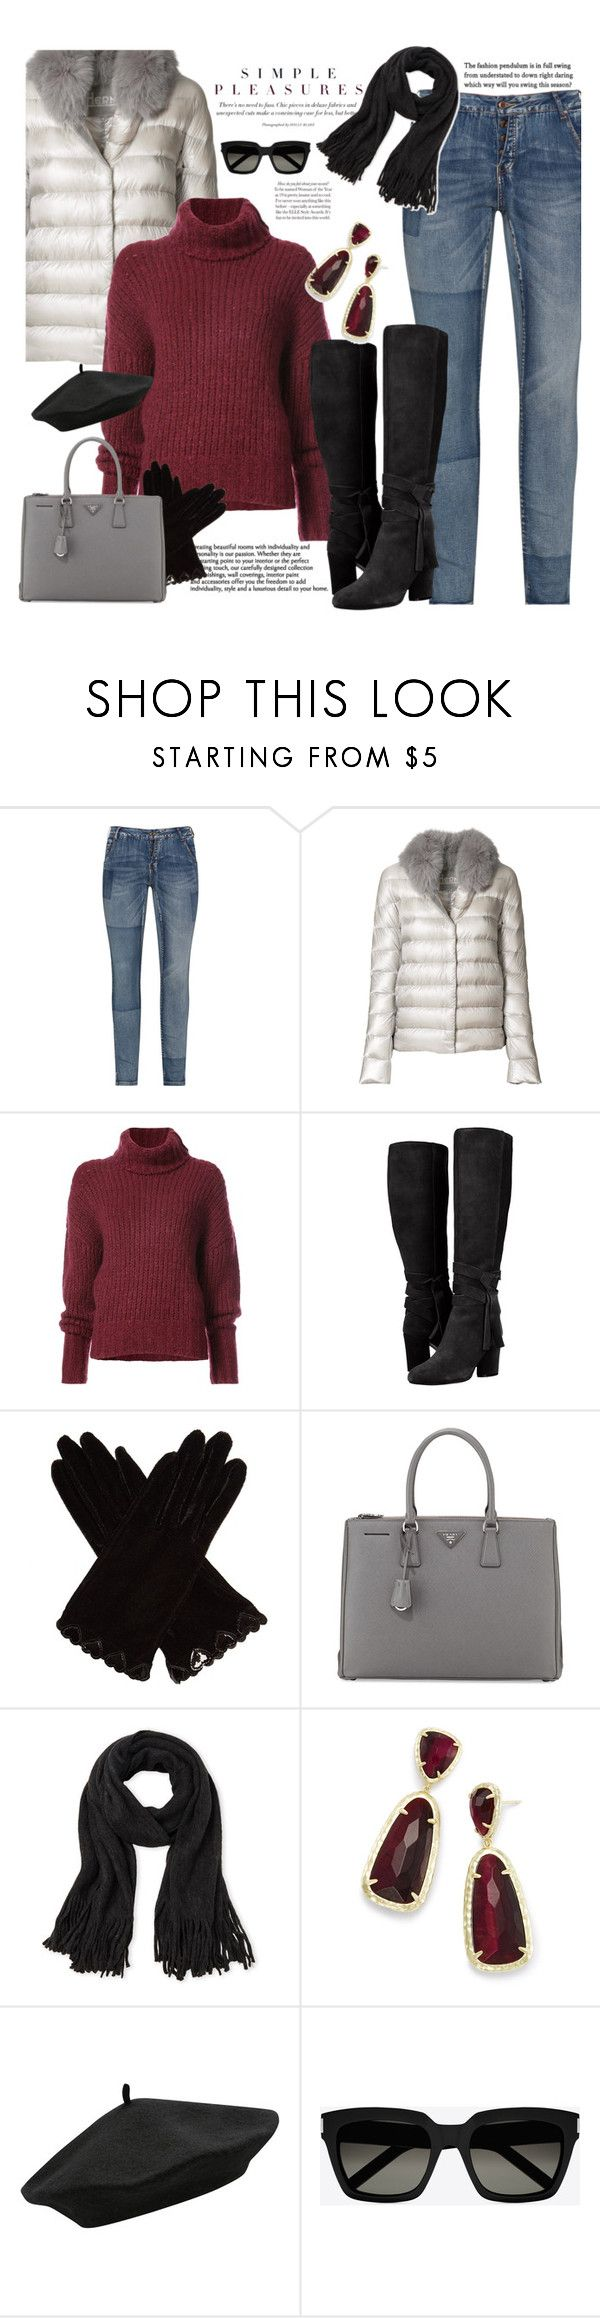 """Puffer Coat & Turtleneck Sweater"" by majezy ❤ liked on Polyvore featuring Zizzi, Herno, BY. Bonnie Young, AGNELLE, Prada, Steve Madden, Kendra Scott, M&Co and Yves Saint Laurent"